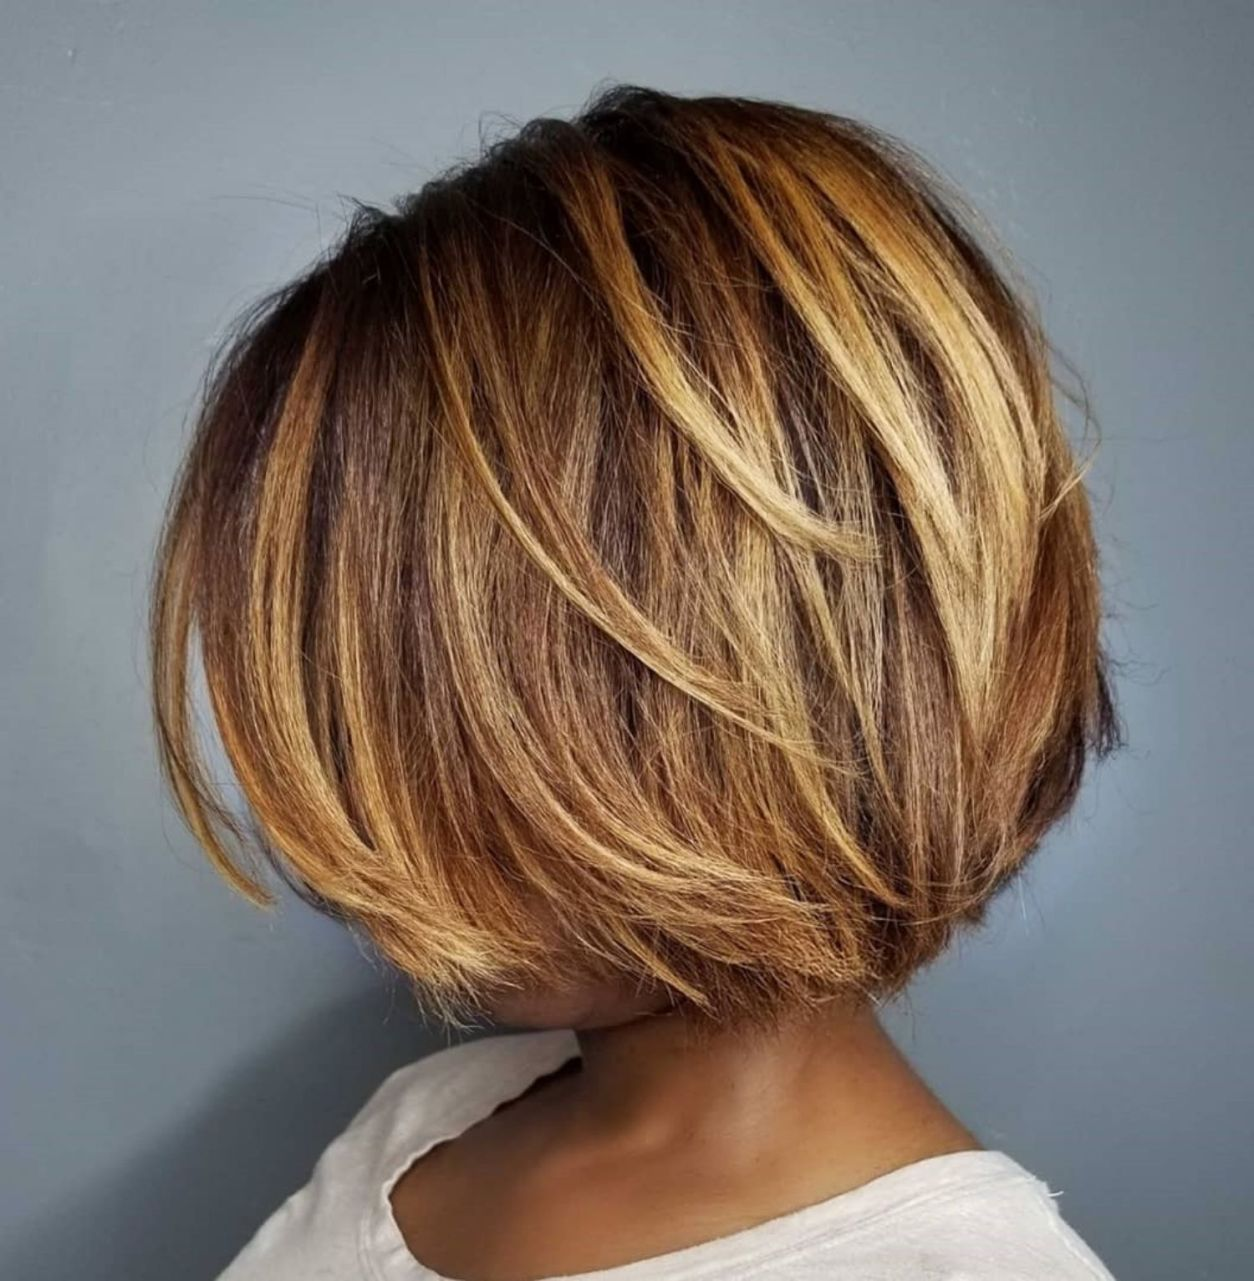 Short Sliced Bob For Black Women In 2020 Kapsels Fijn Haar Kapsels Kort Haar Kapsels